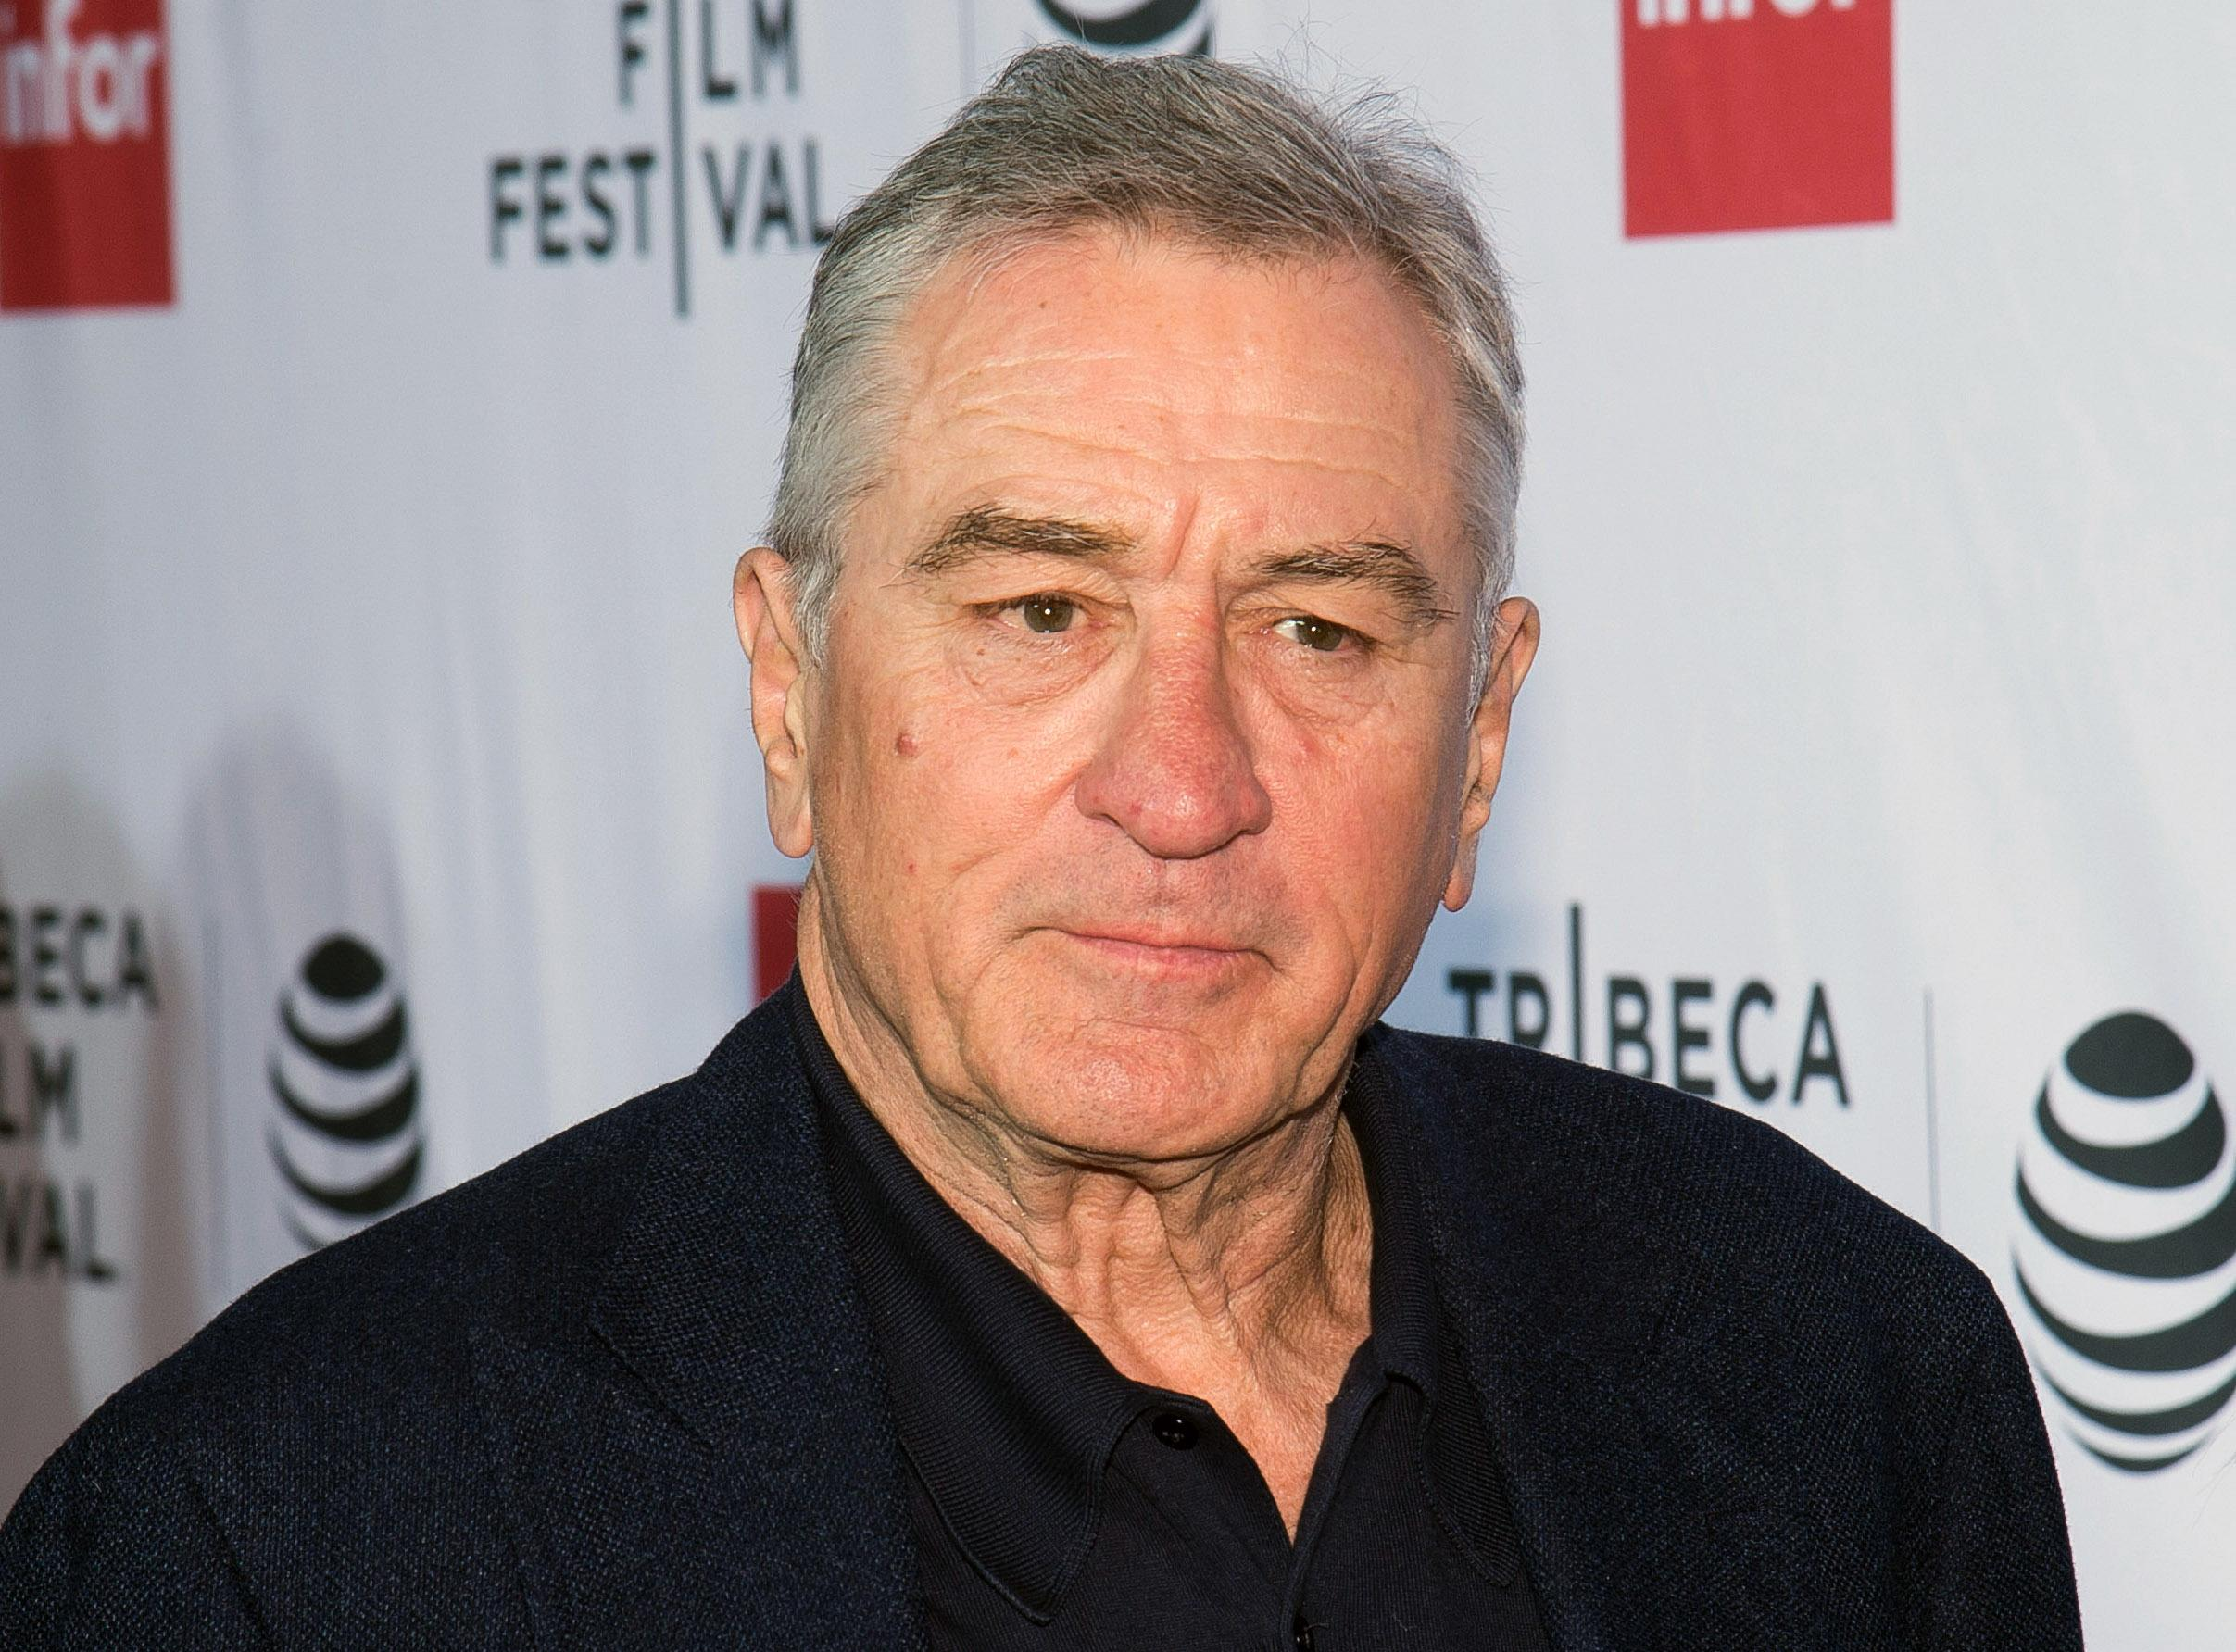 De Niro on Trump: 'This guy has proven himself to be a total loser'